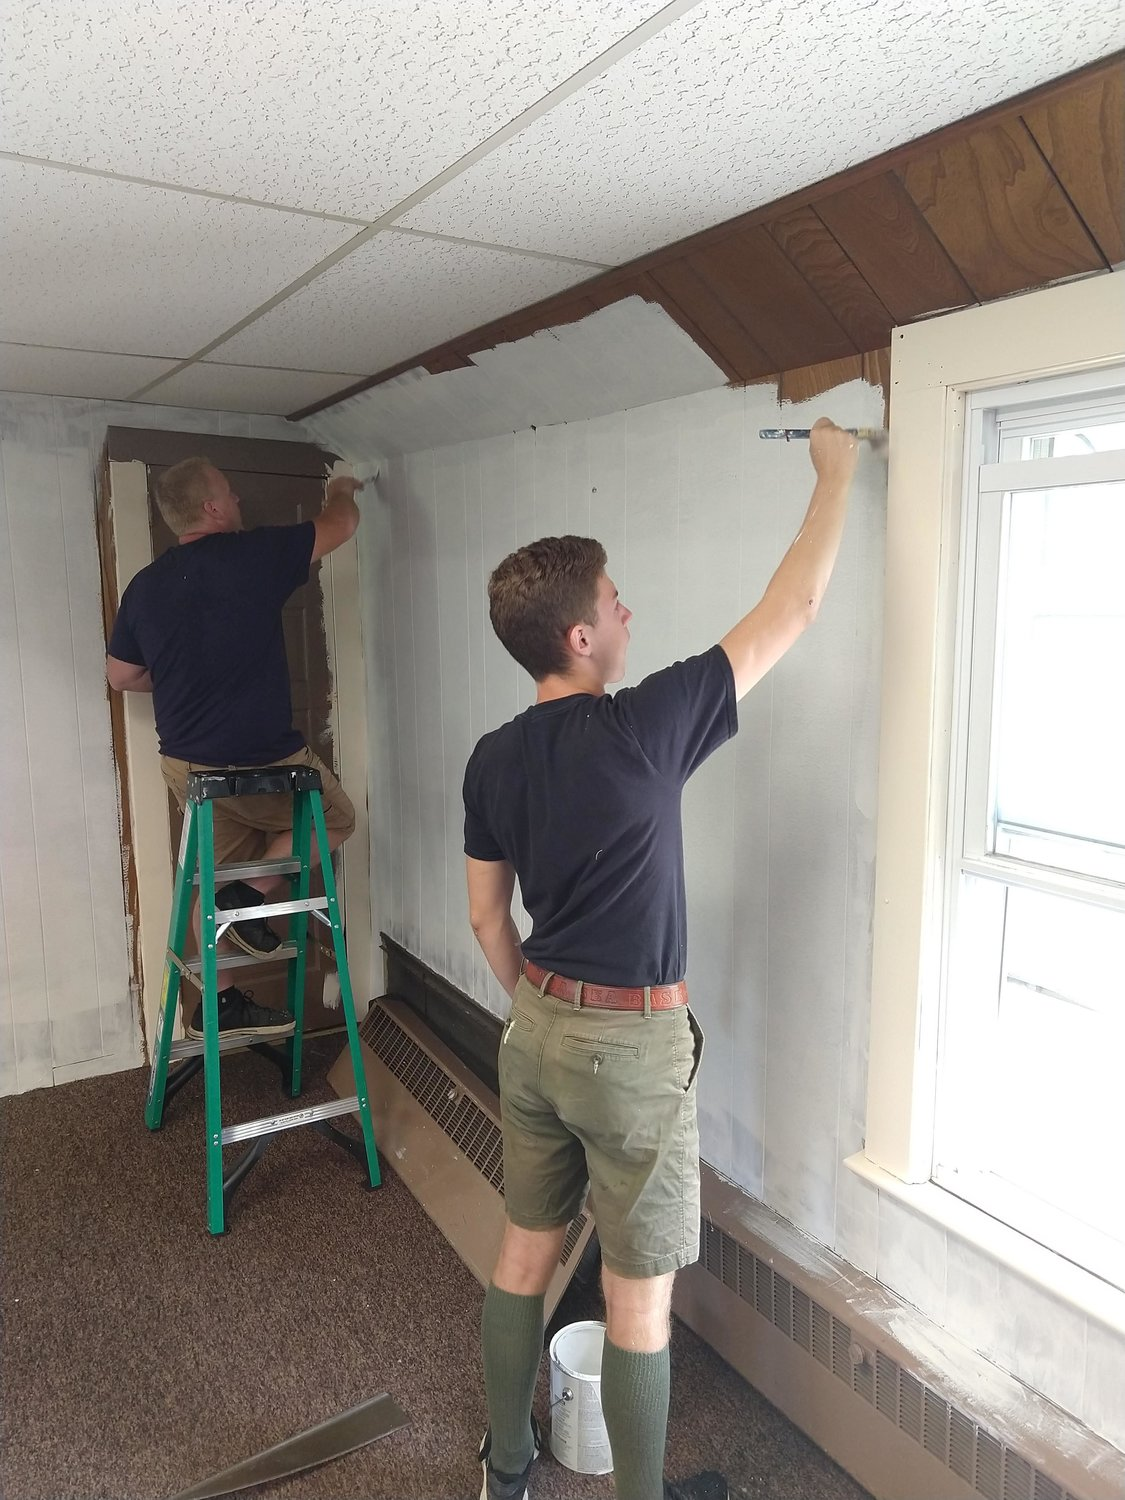 Frank and family members worked tirelessly to renovate the common room of the Bayport Methodist Church as his Eagle Scout project.